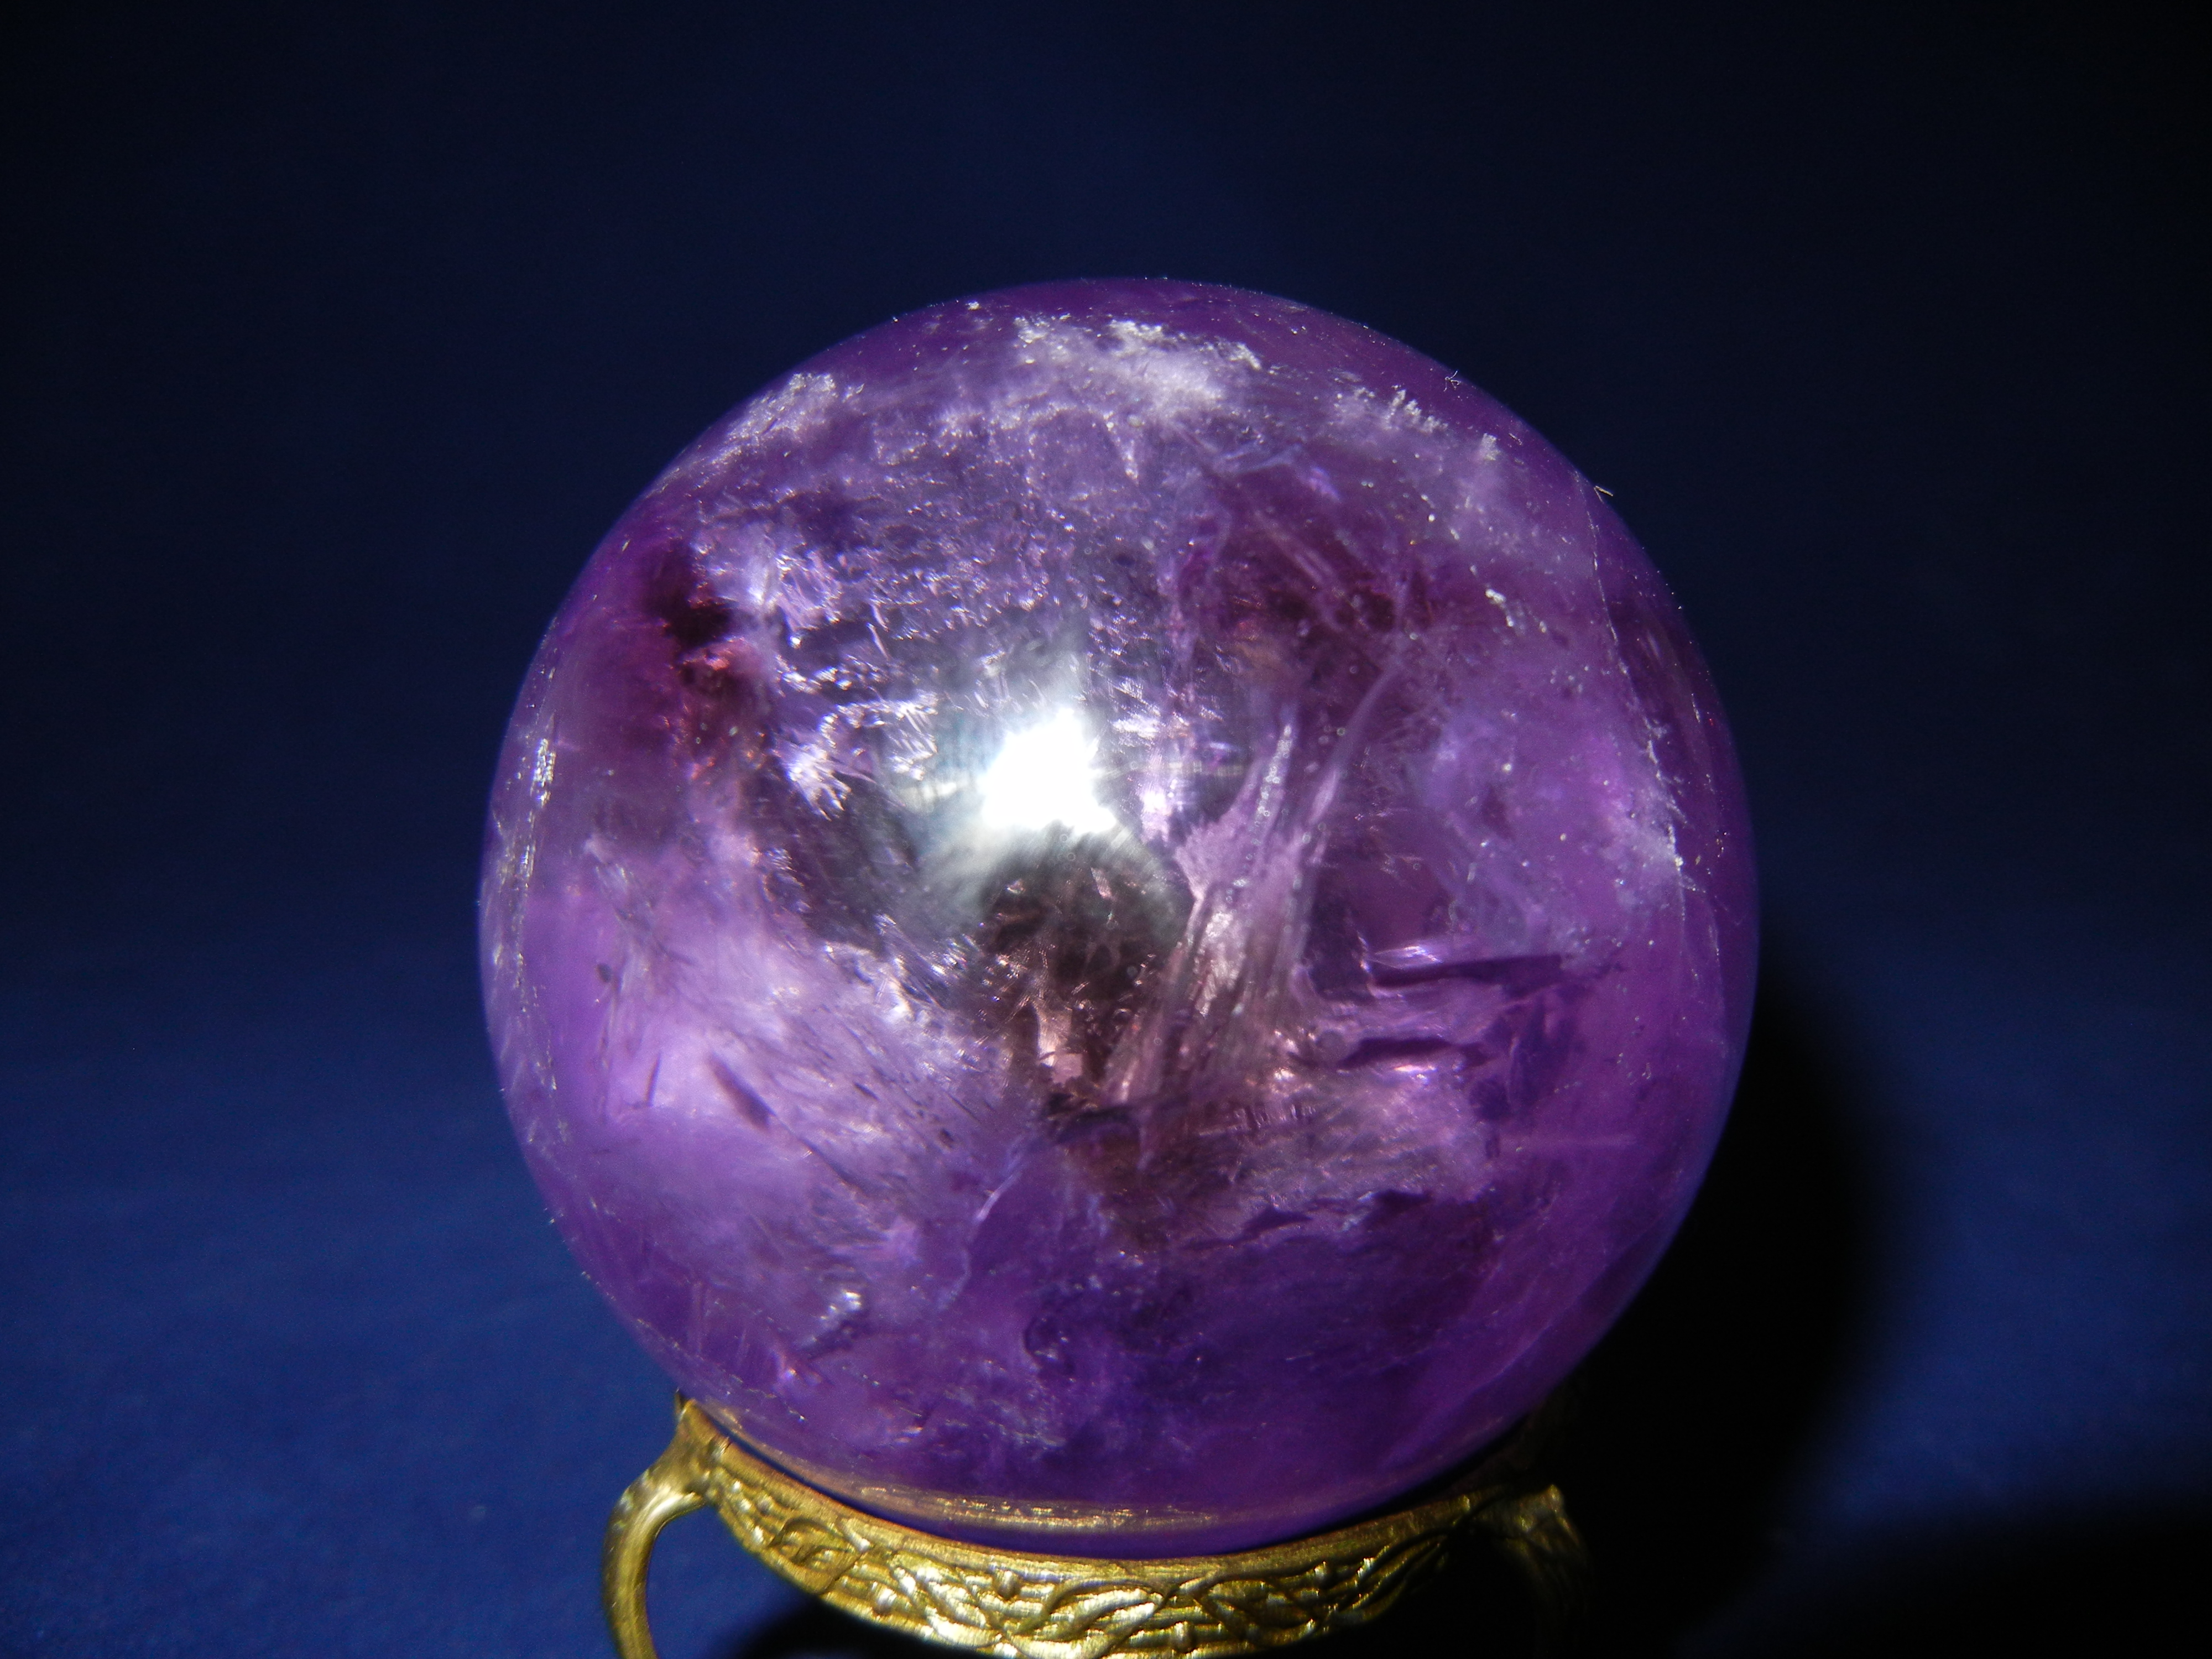 AMETHYST SPHERE, WITH SMOKEY AMETHYST BANDS RARE FIND FROM BRAZIL